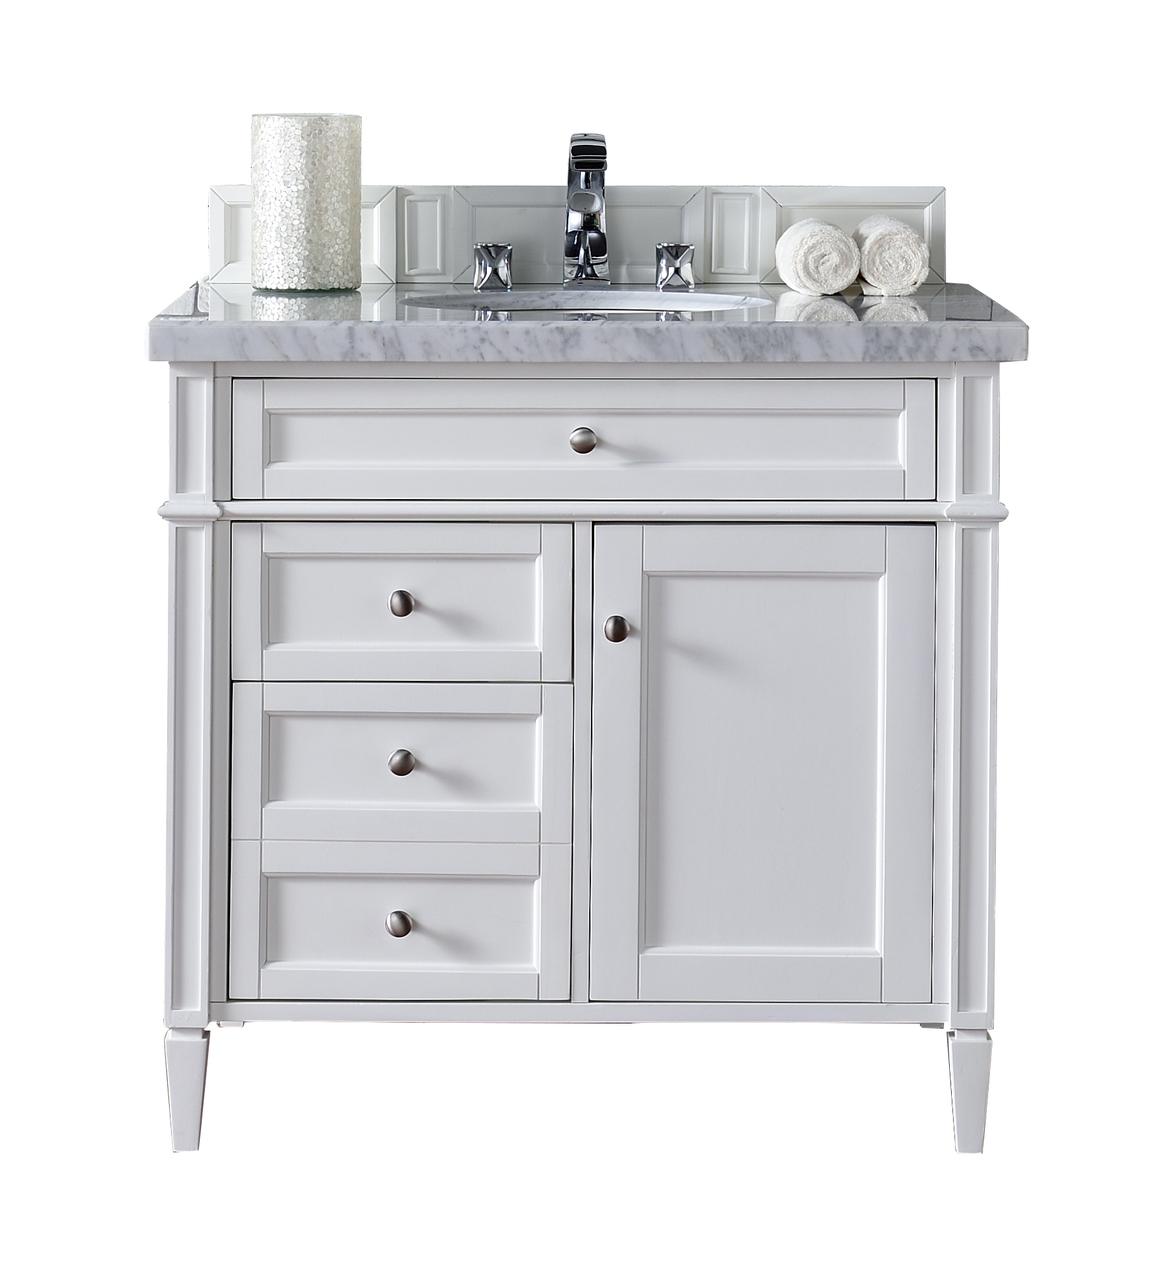 Contemporary 36 Inch Single Bathroom Vanity White Finish No Top